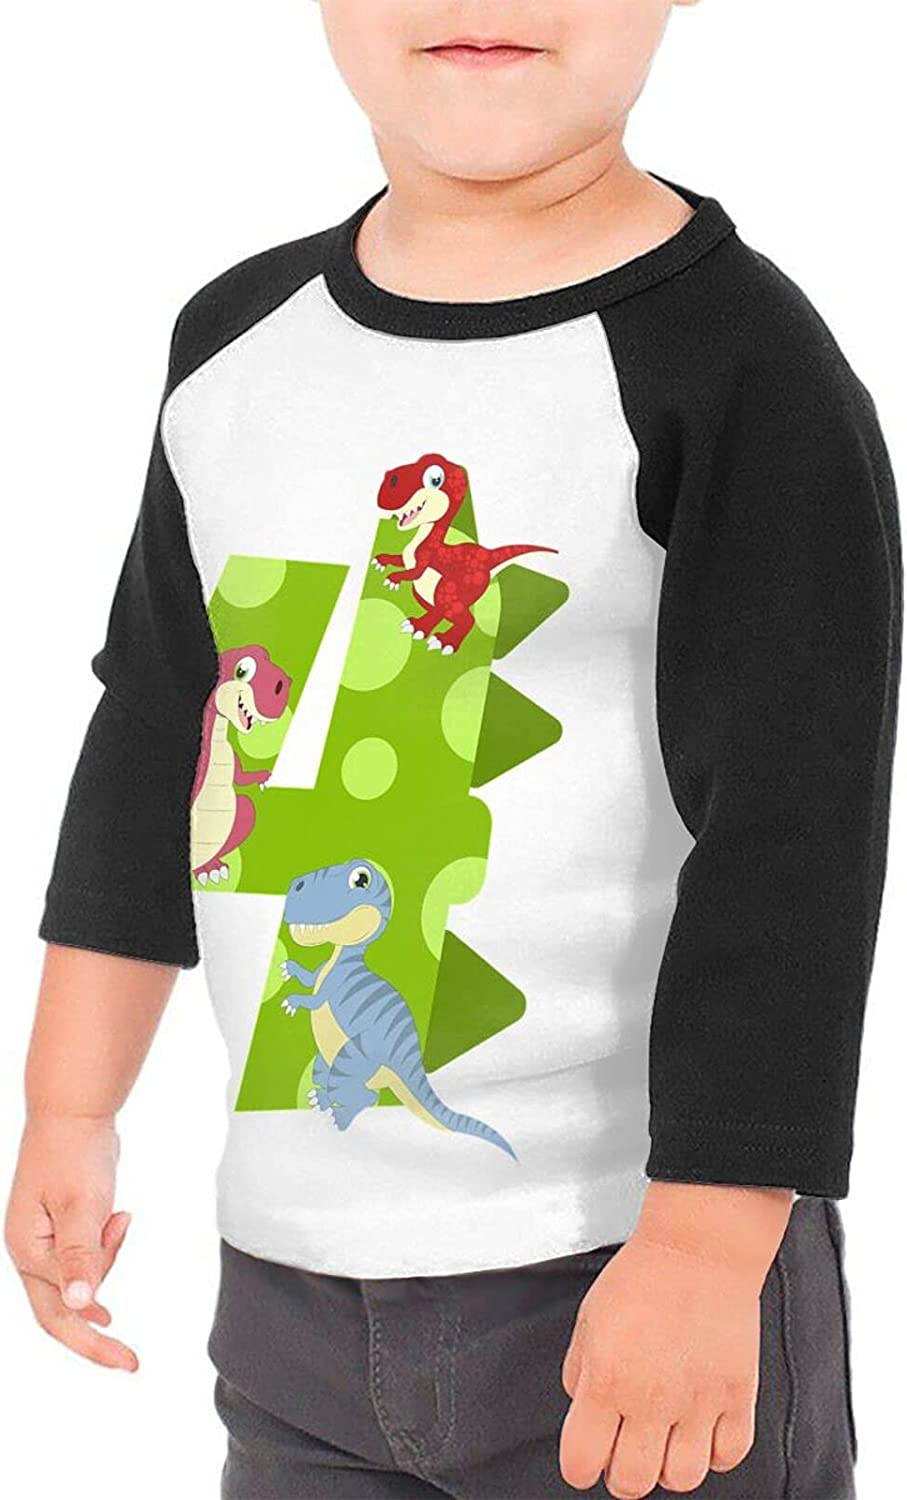 4th Dinosaur Trex T-Shirts Novelty for Youth Tees with Cool Designs